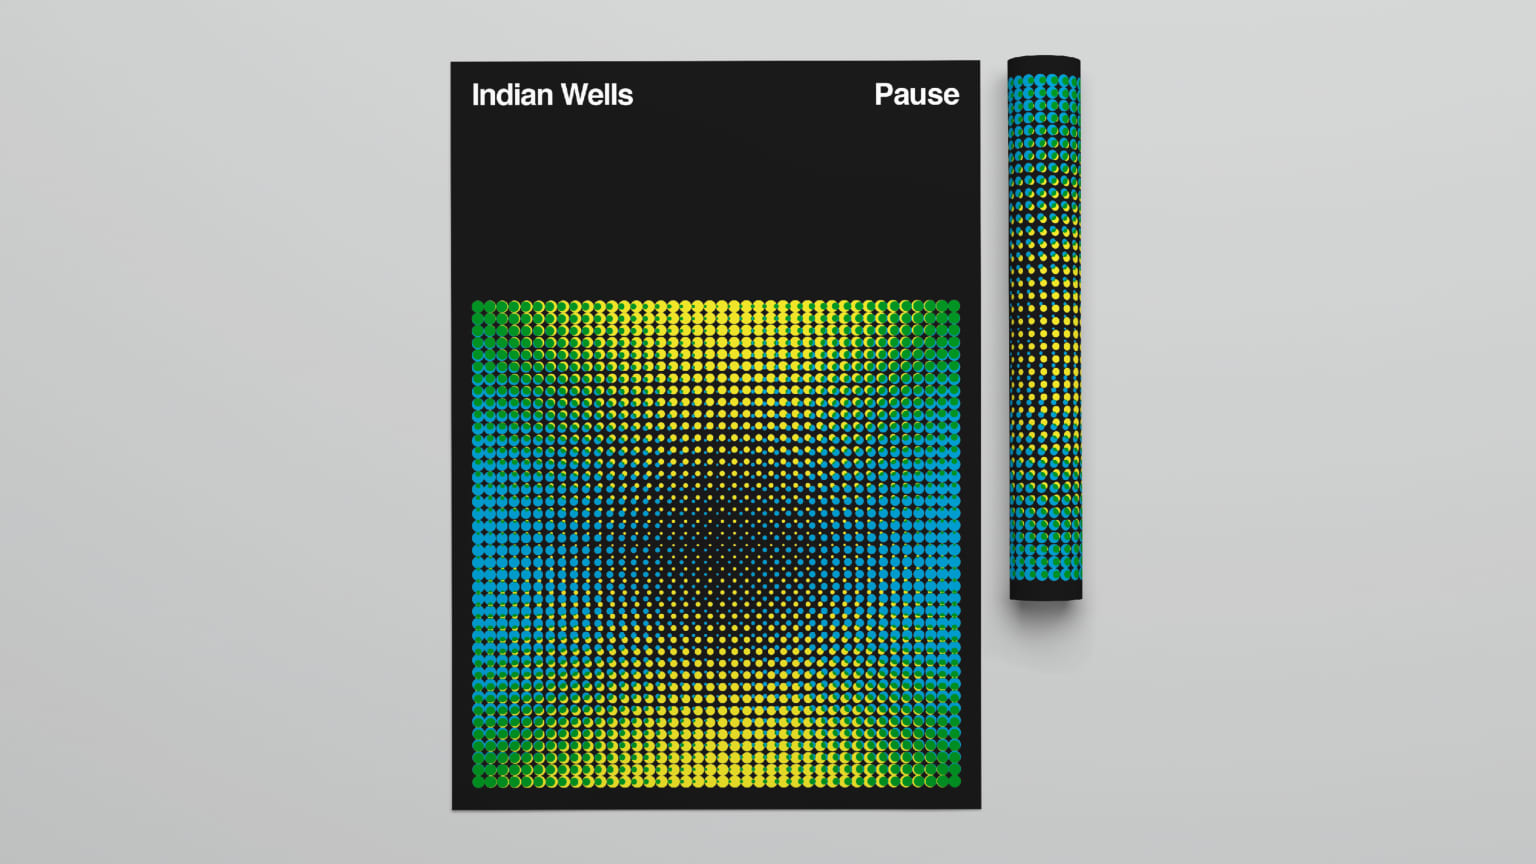 Indian Wells – Pause